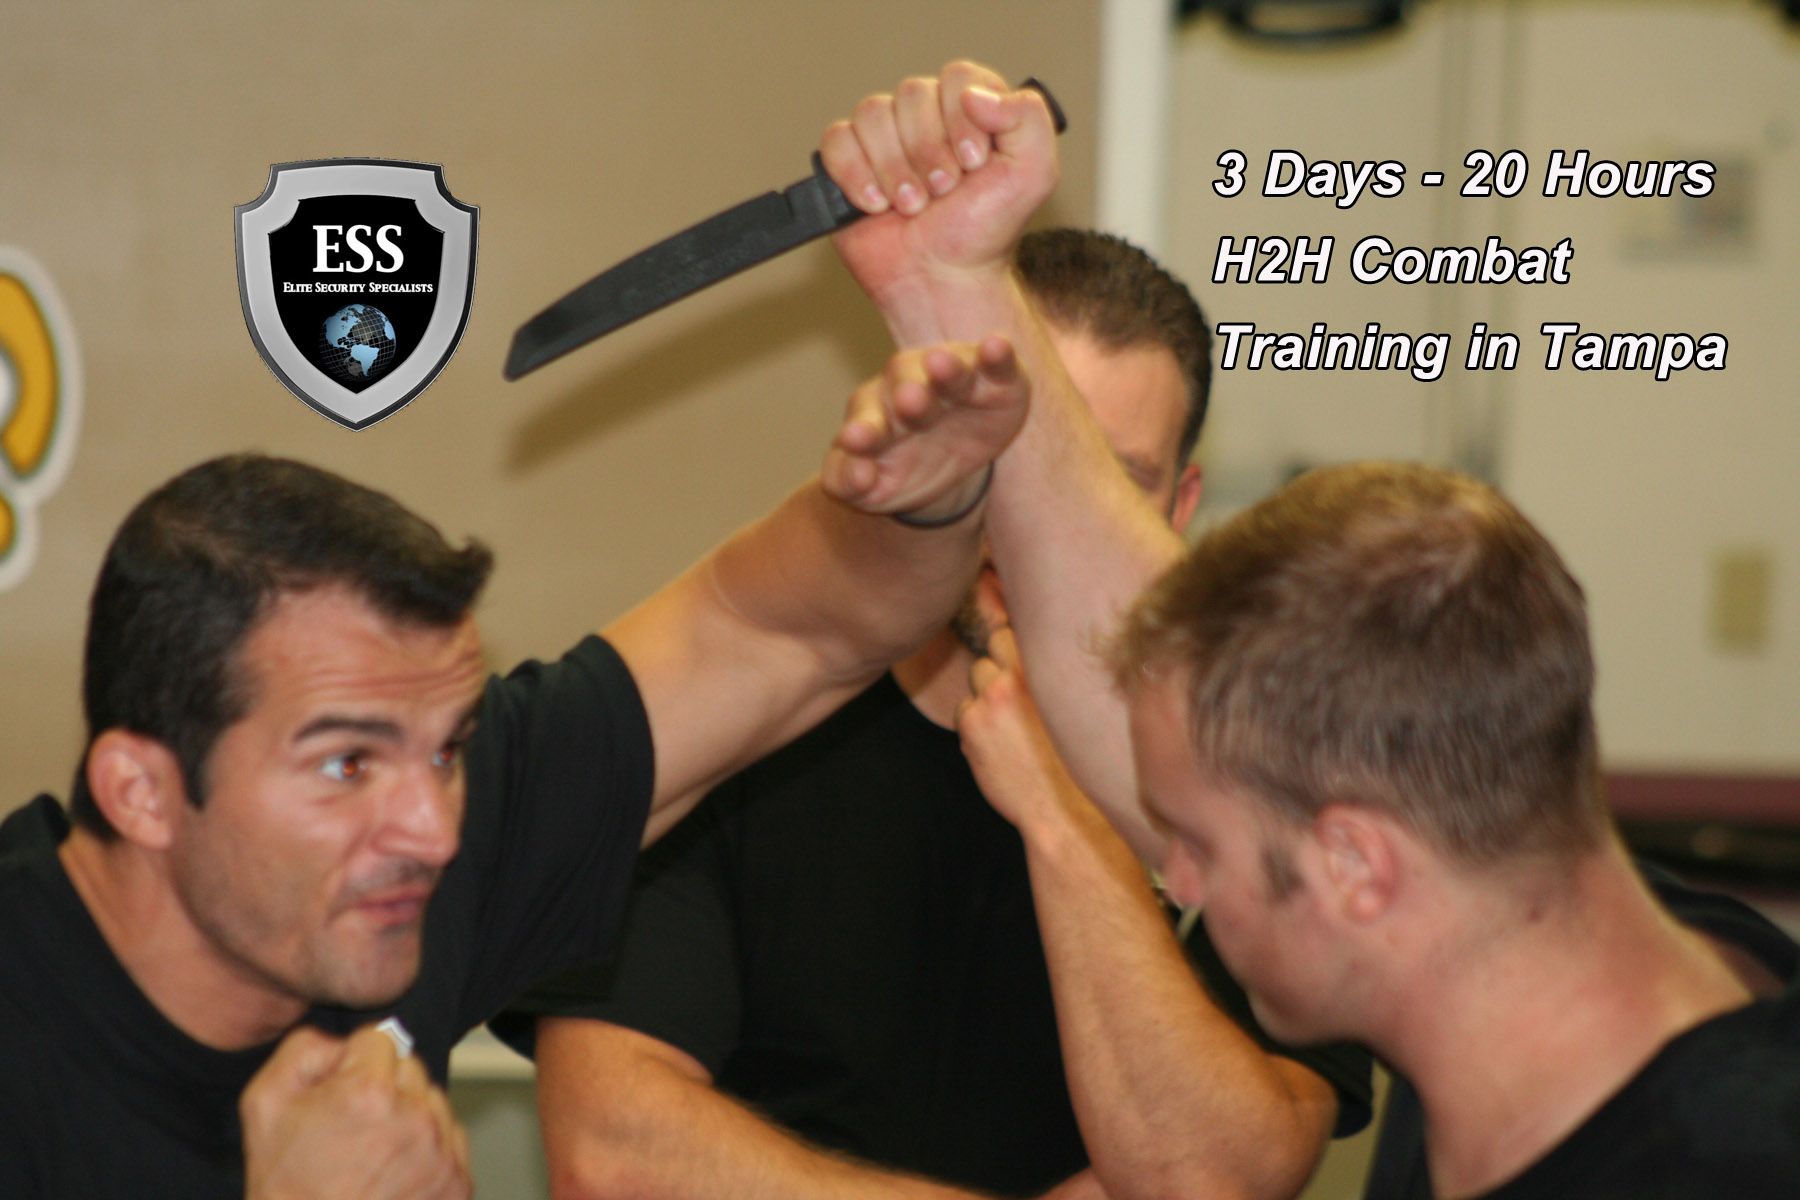 Defensive Tactics Training in Tampa September 21-23 20 Hours - $300